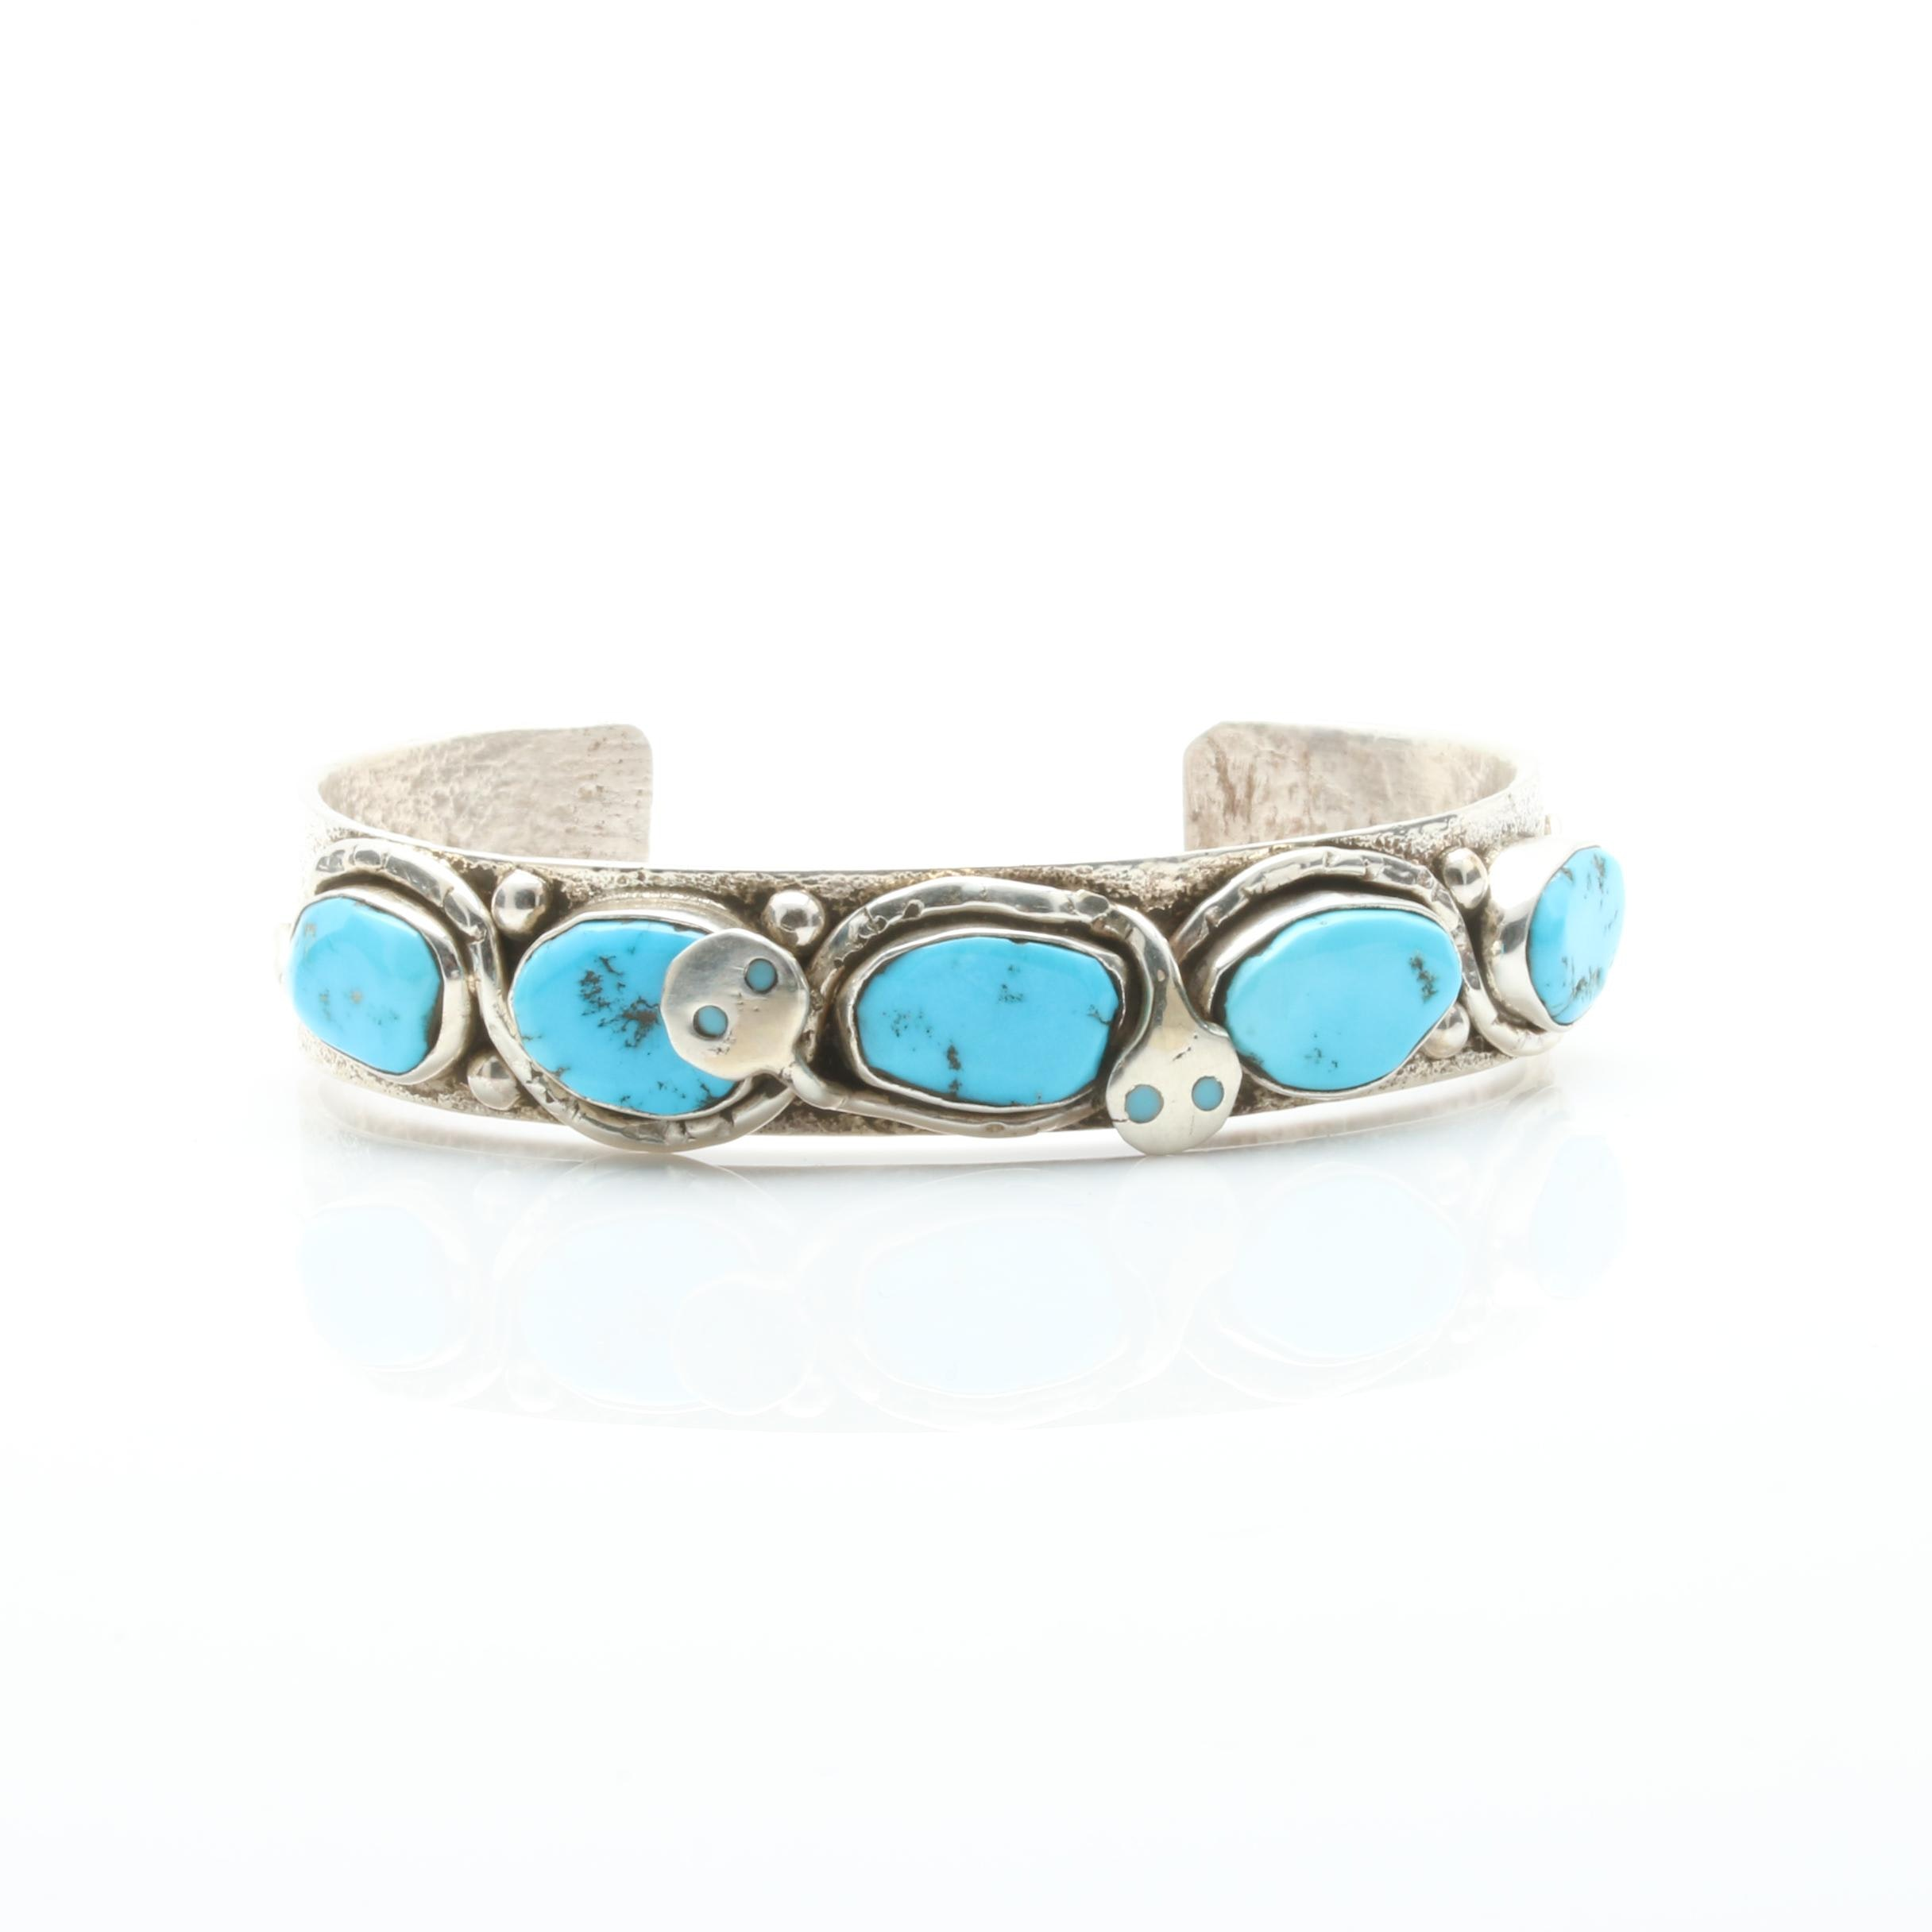 Jude Candelaria Zuni Sterling Silver Sandcast Turquoise Cuff Bracelet